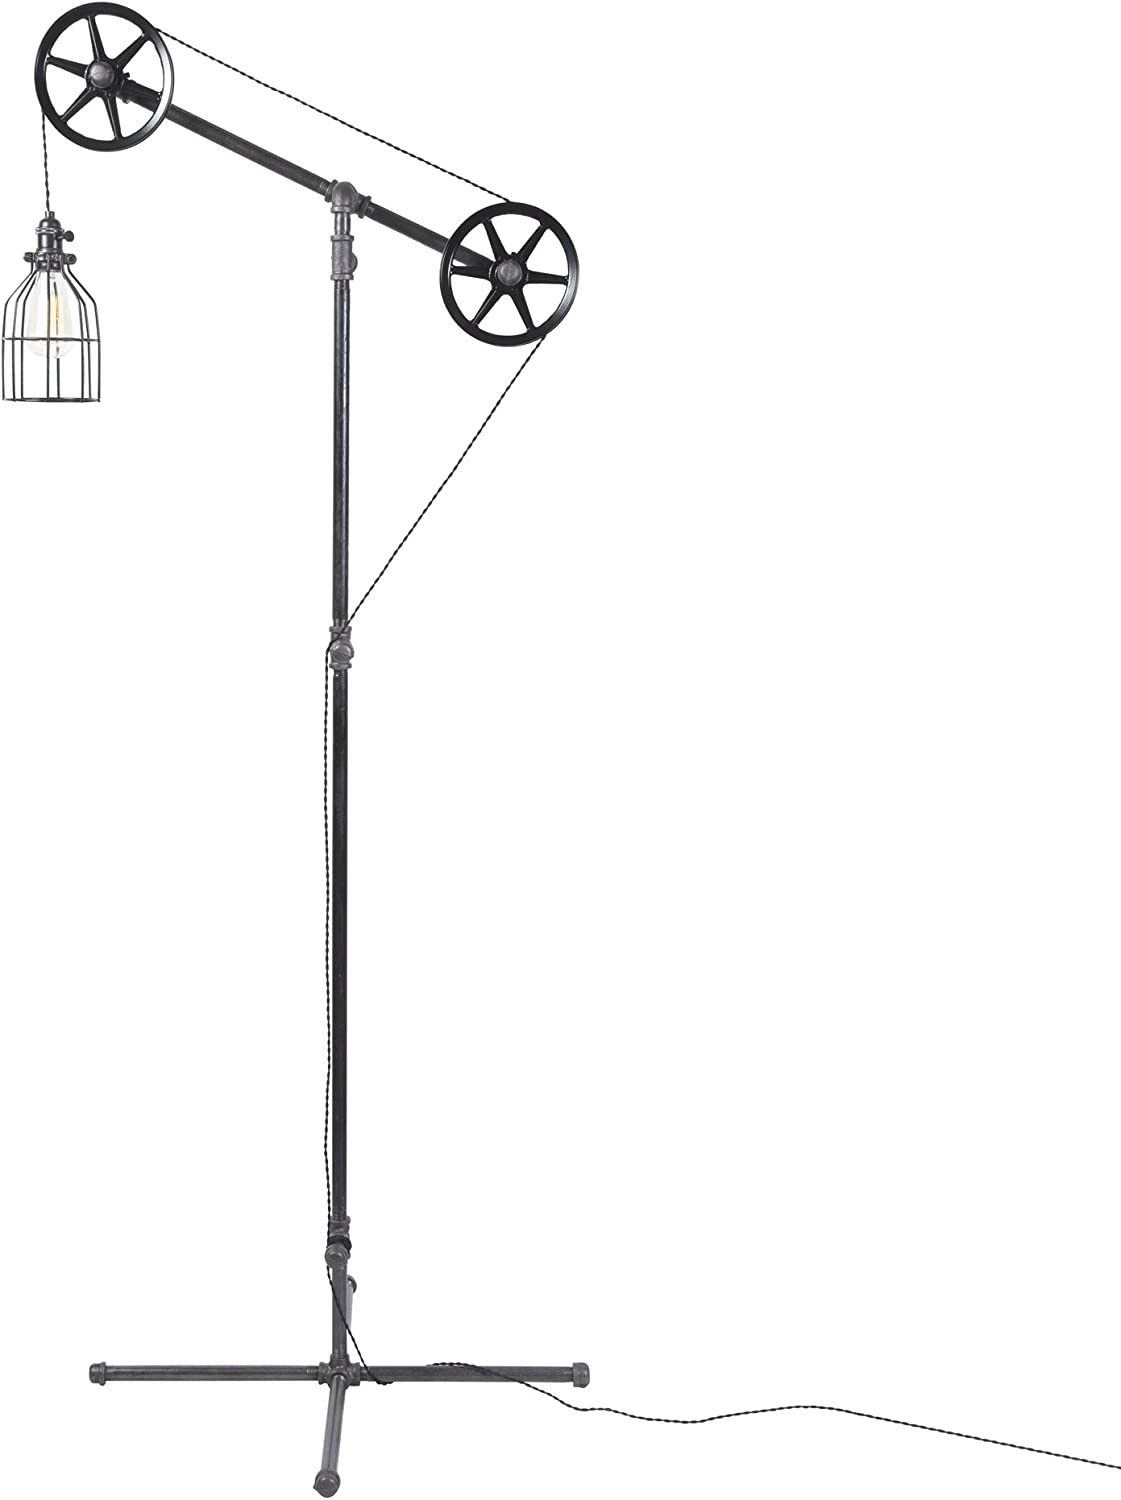 West Ninth Vintage Black Pendant Industrial Standing Floor Lamp with Black Steel Wheels – Use in Any Room – Add Character to Your Office, Living Room or Bedroom